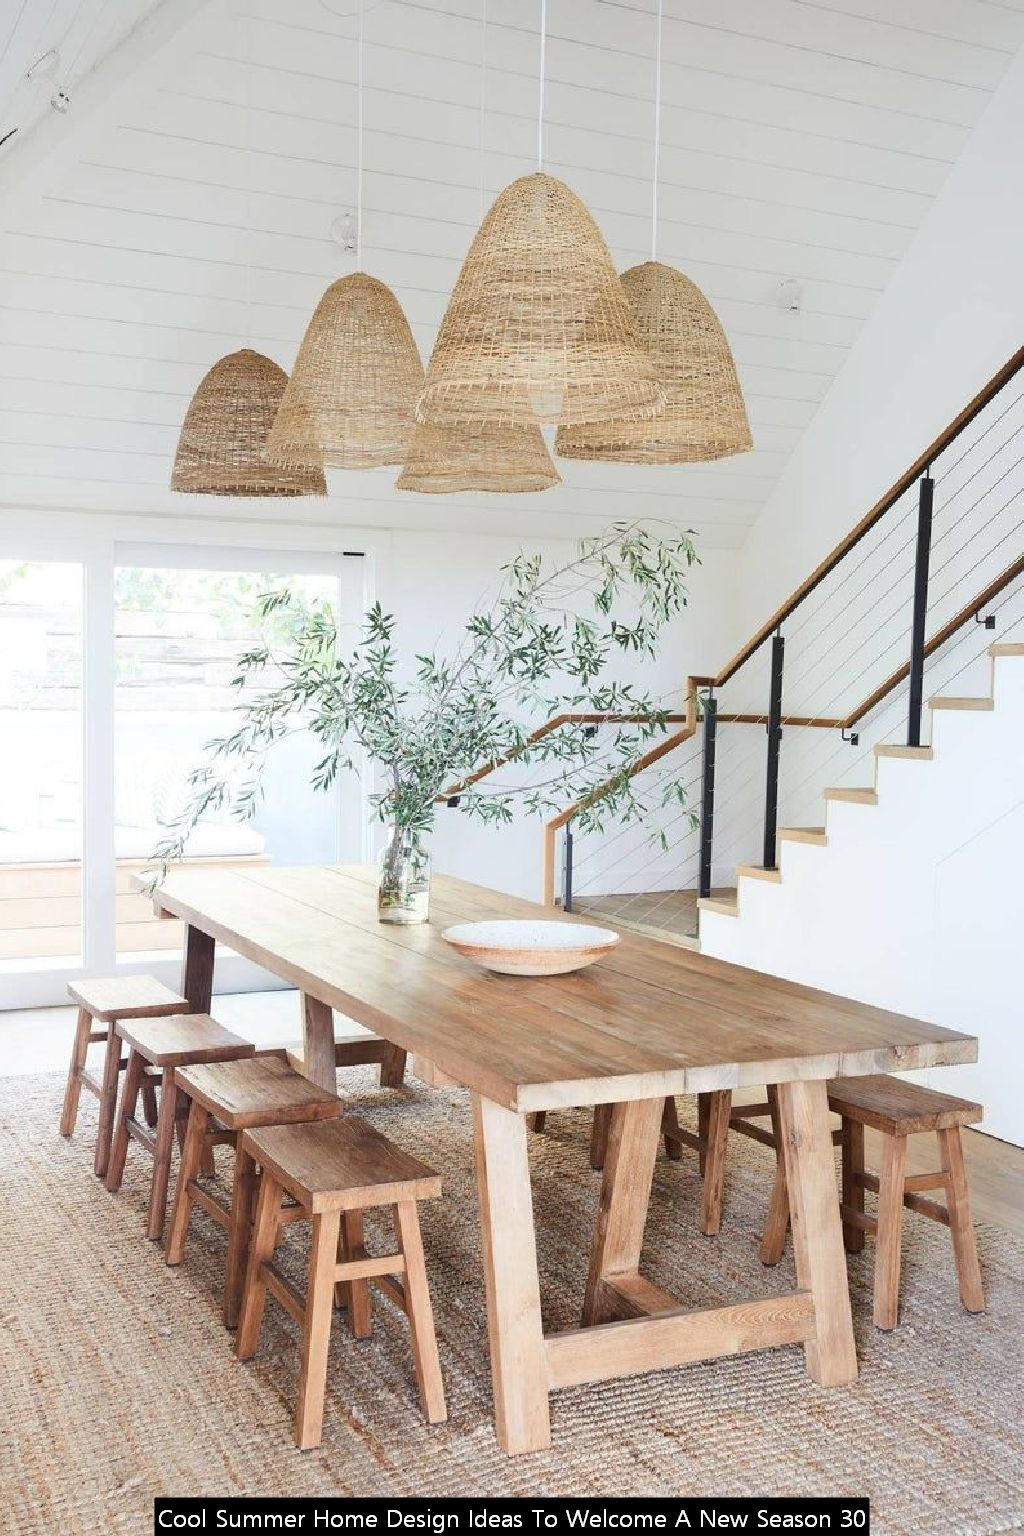 Cool Summer Home Design Ideas To Welcome A New Season 30